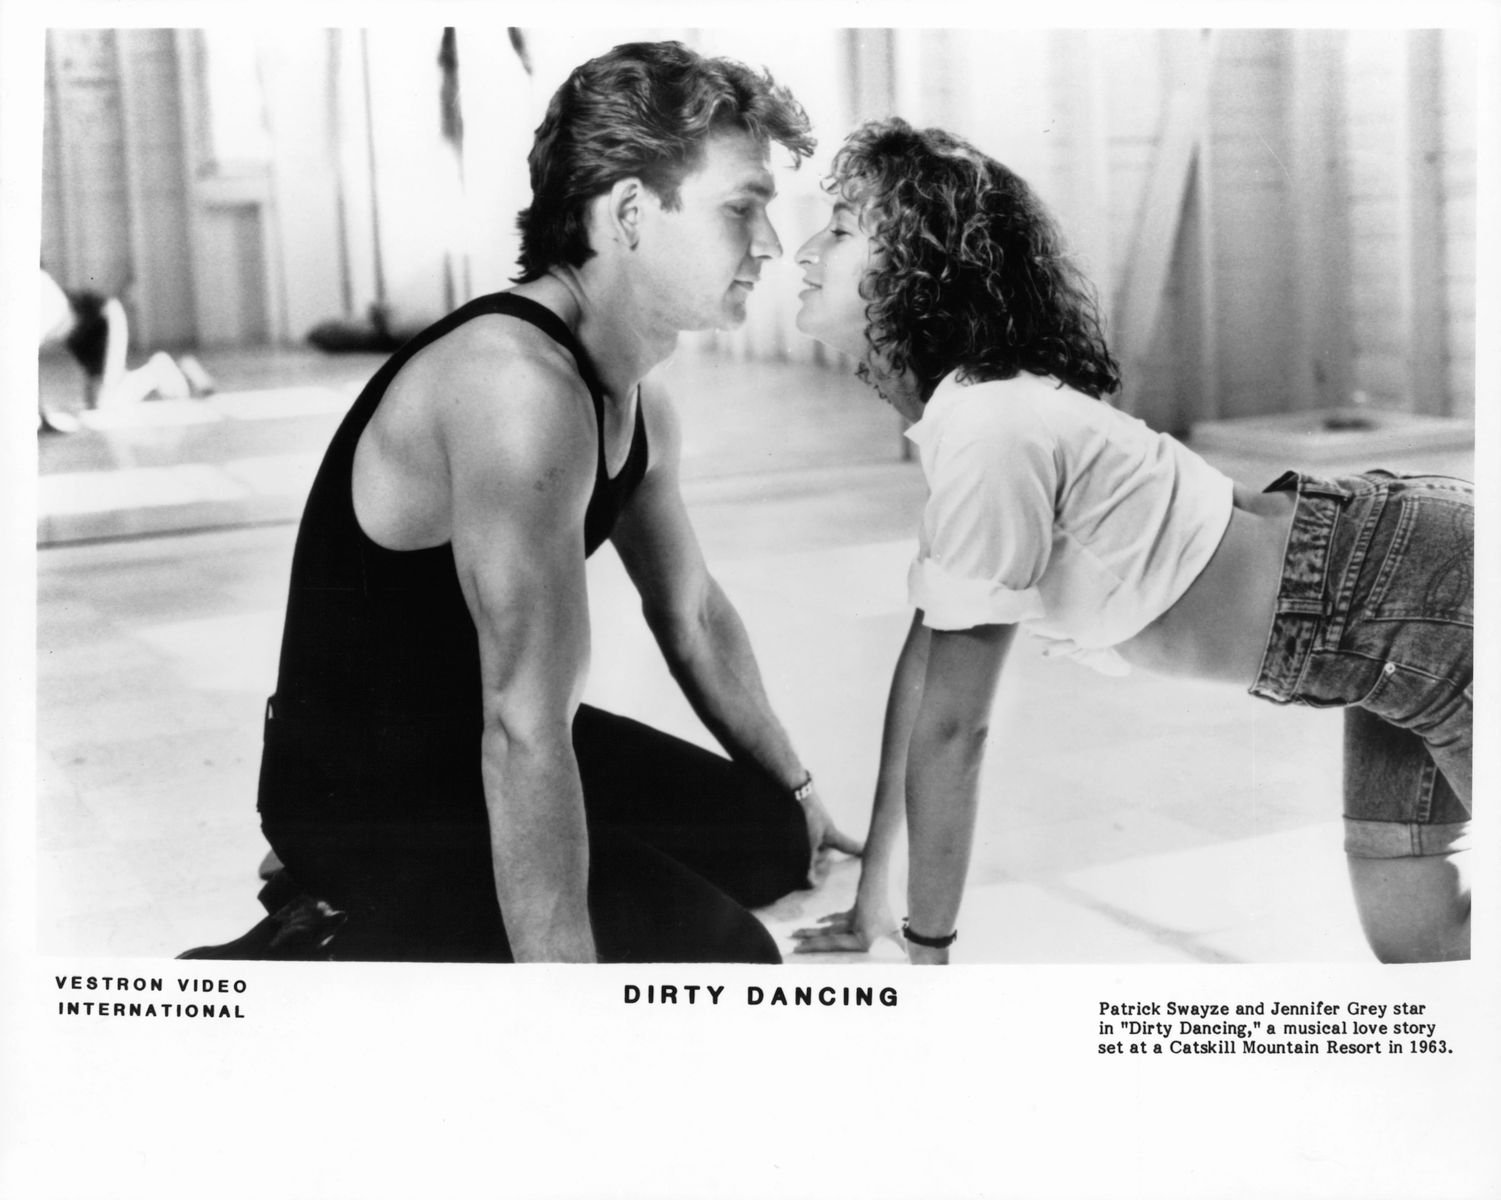 Patrick Swayze and Jennifer Grey in a scene from the film 'Dirty Dancing', 1987   Source: Getty Images)